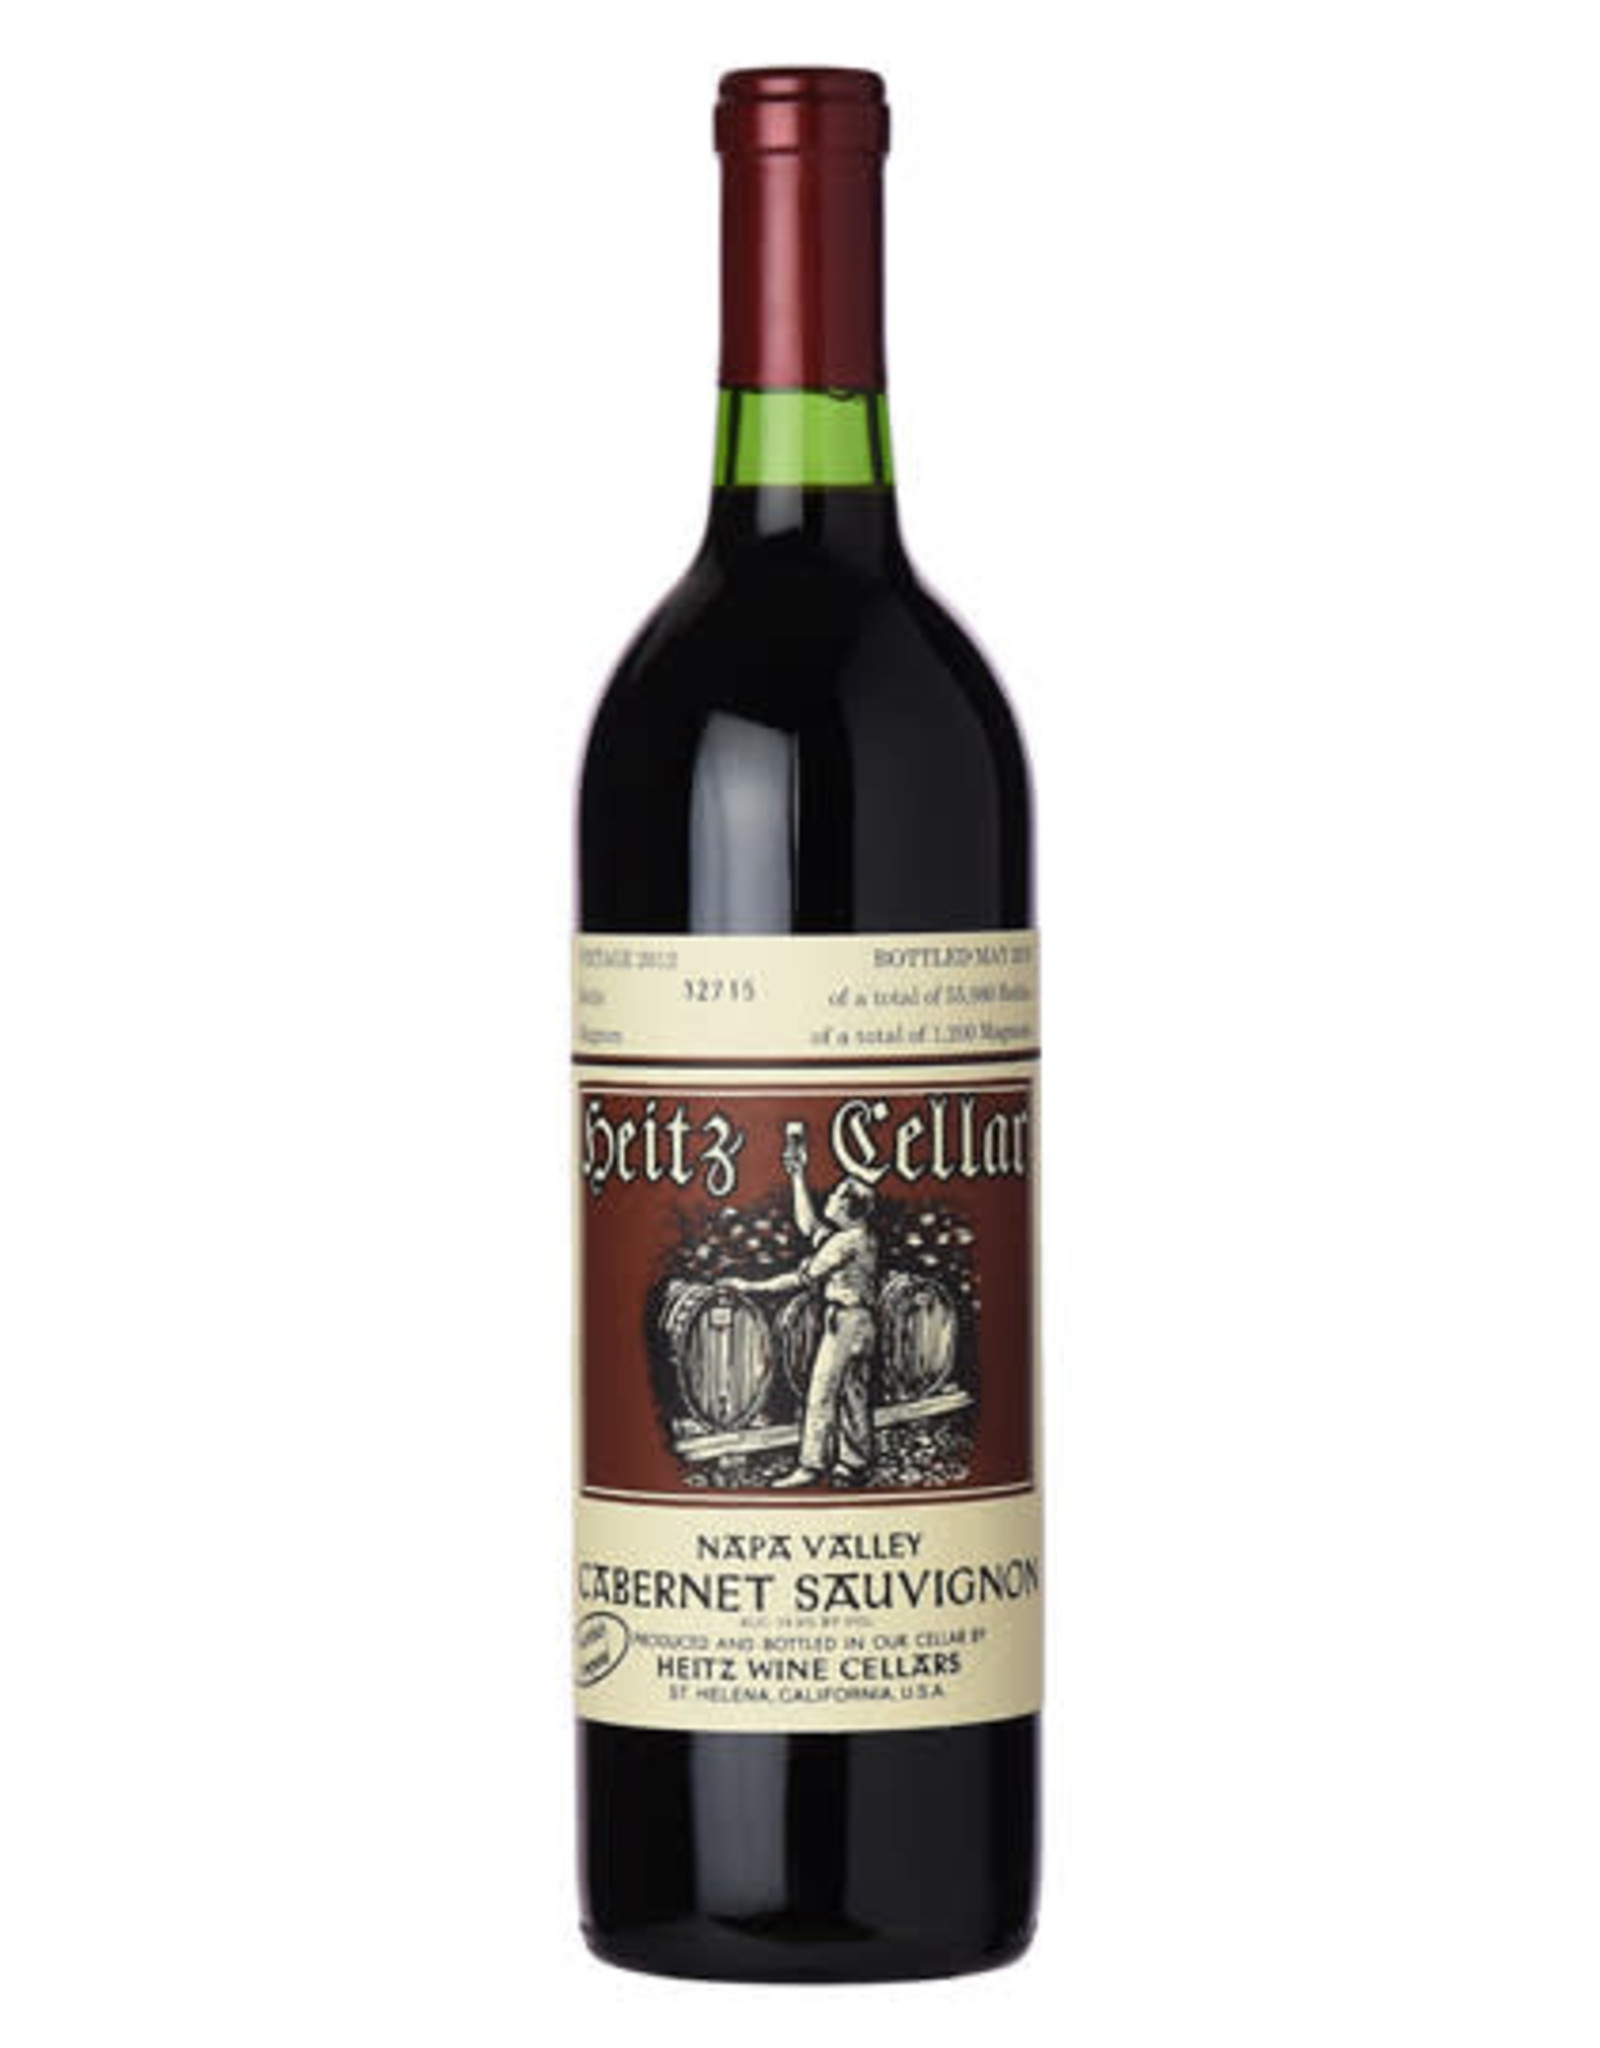 Heitz Cellars Martha's Vineyard, Cabernet Sauvignon, Napa Valley 2012